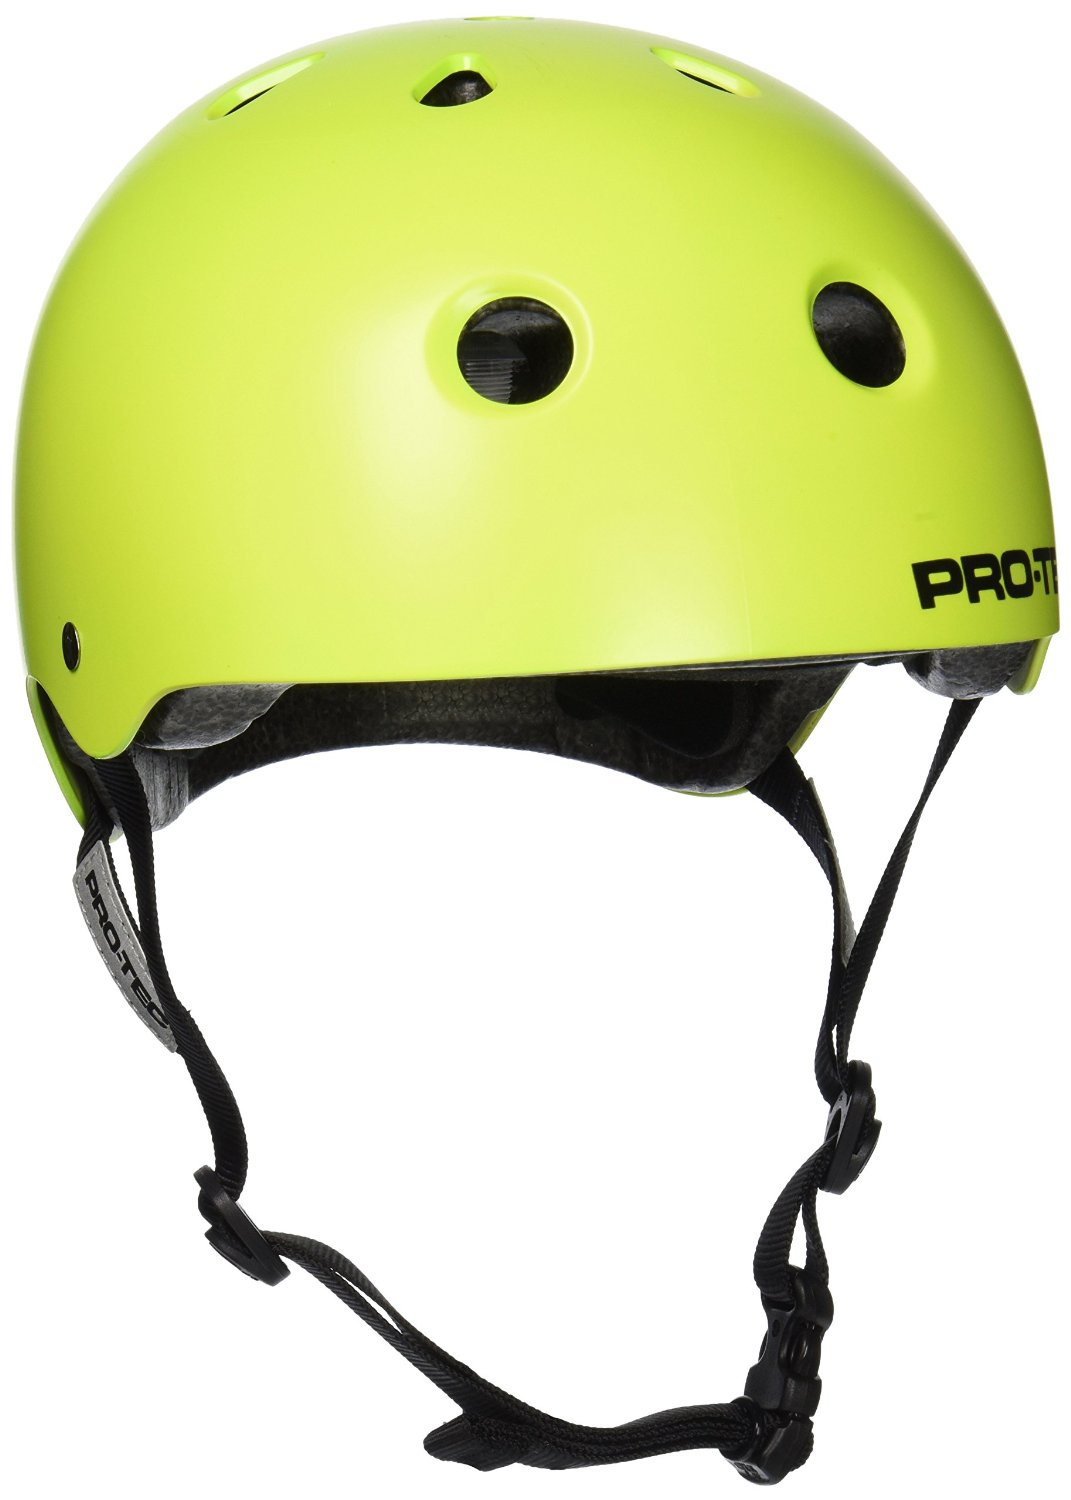 Small ProTec Bicycle Helmets